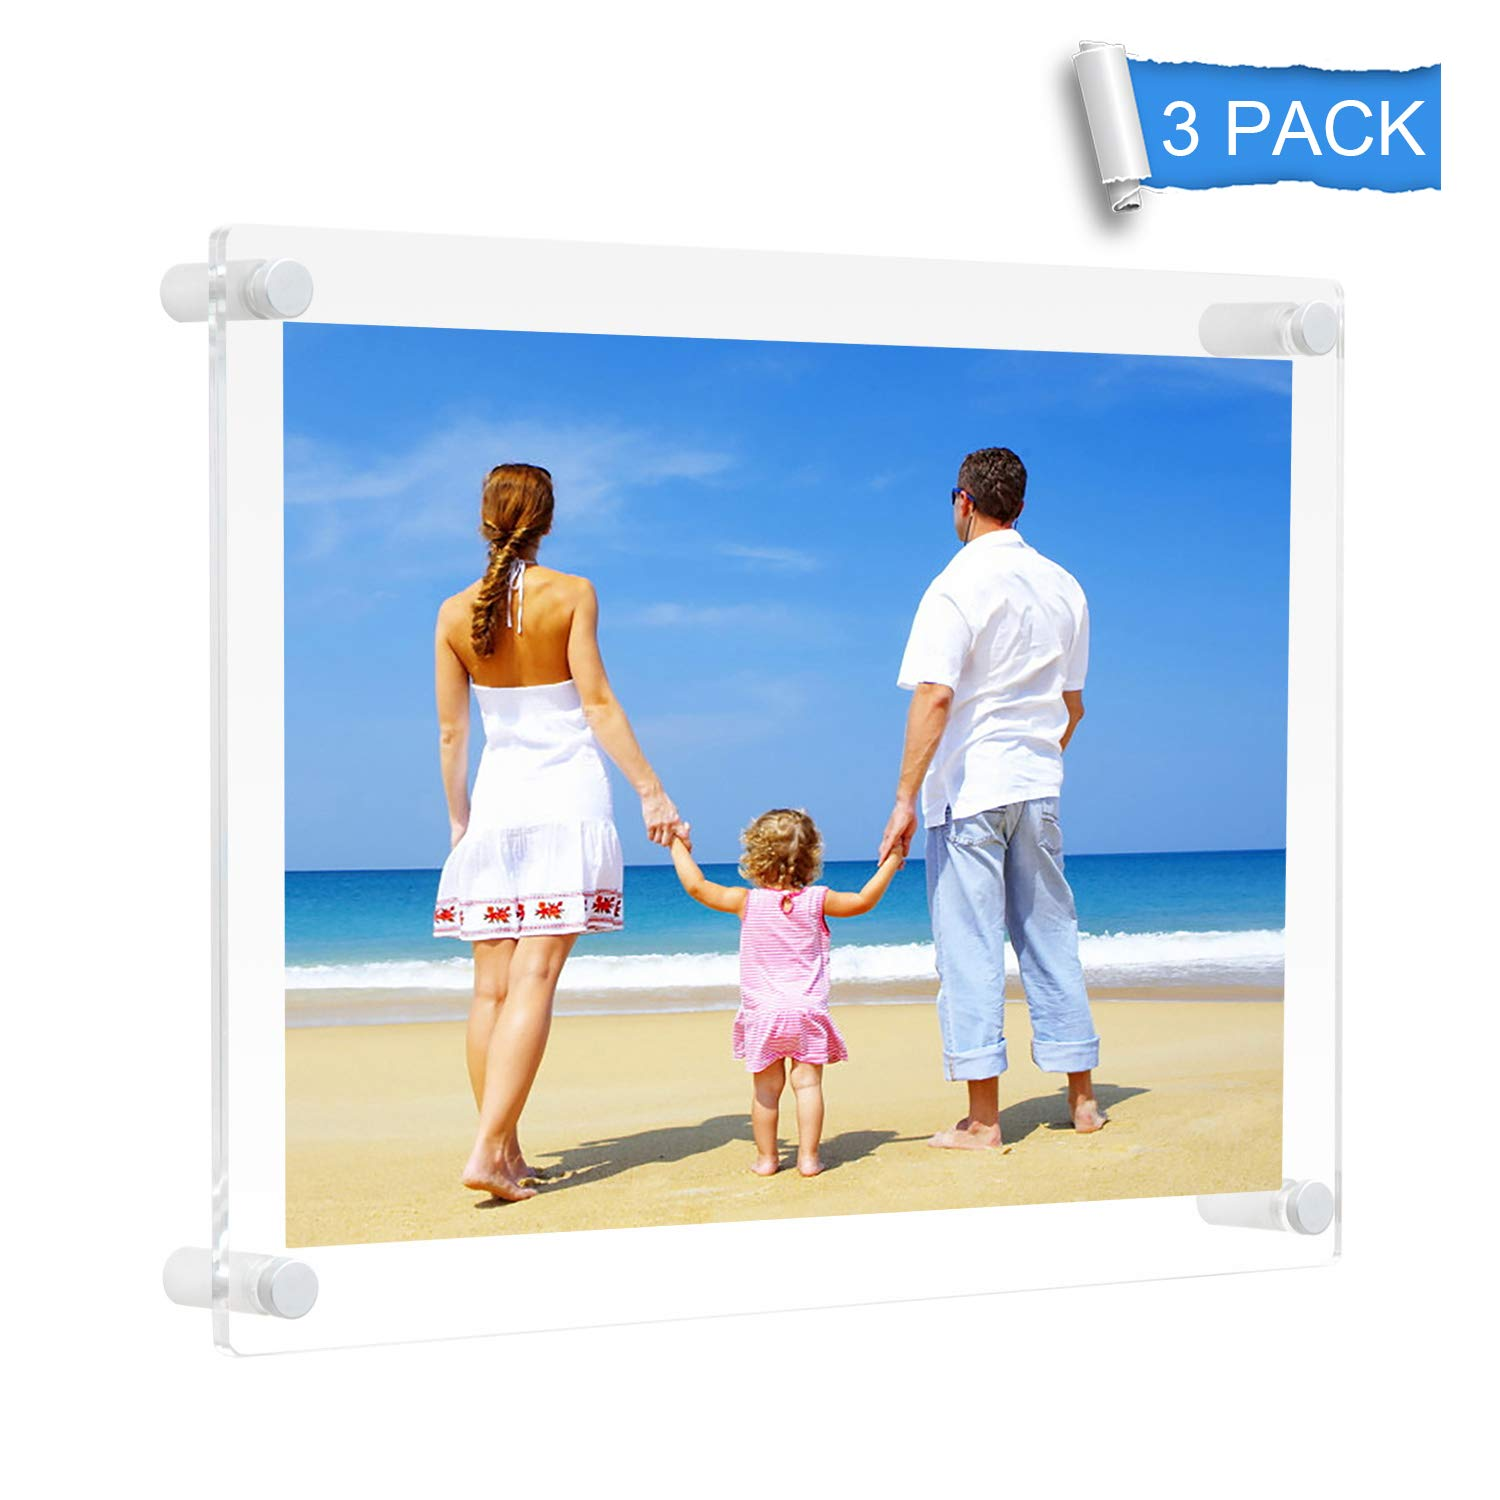 NIUBEE 3Pack 8.5x11 Clear Acrylic Wall Mount Picture Frame Floating Frames for Photography Display by NIUBEE